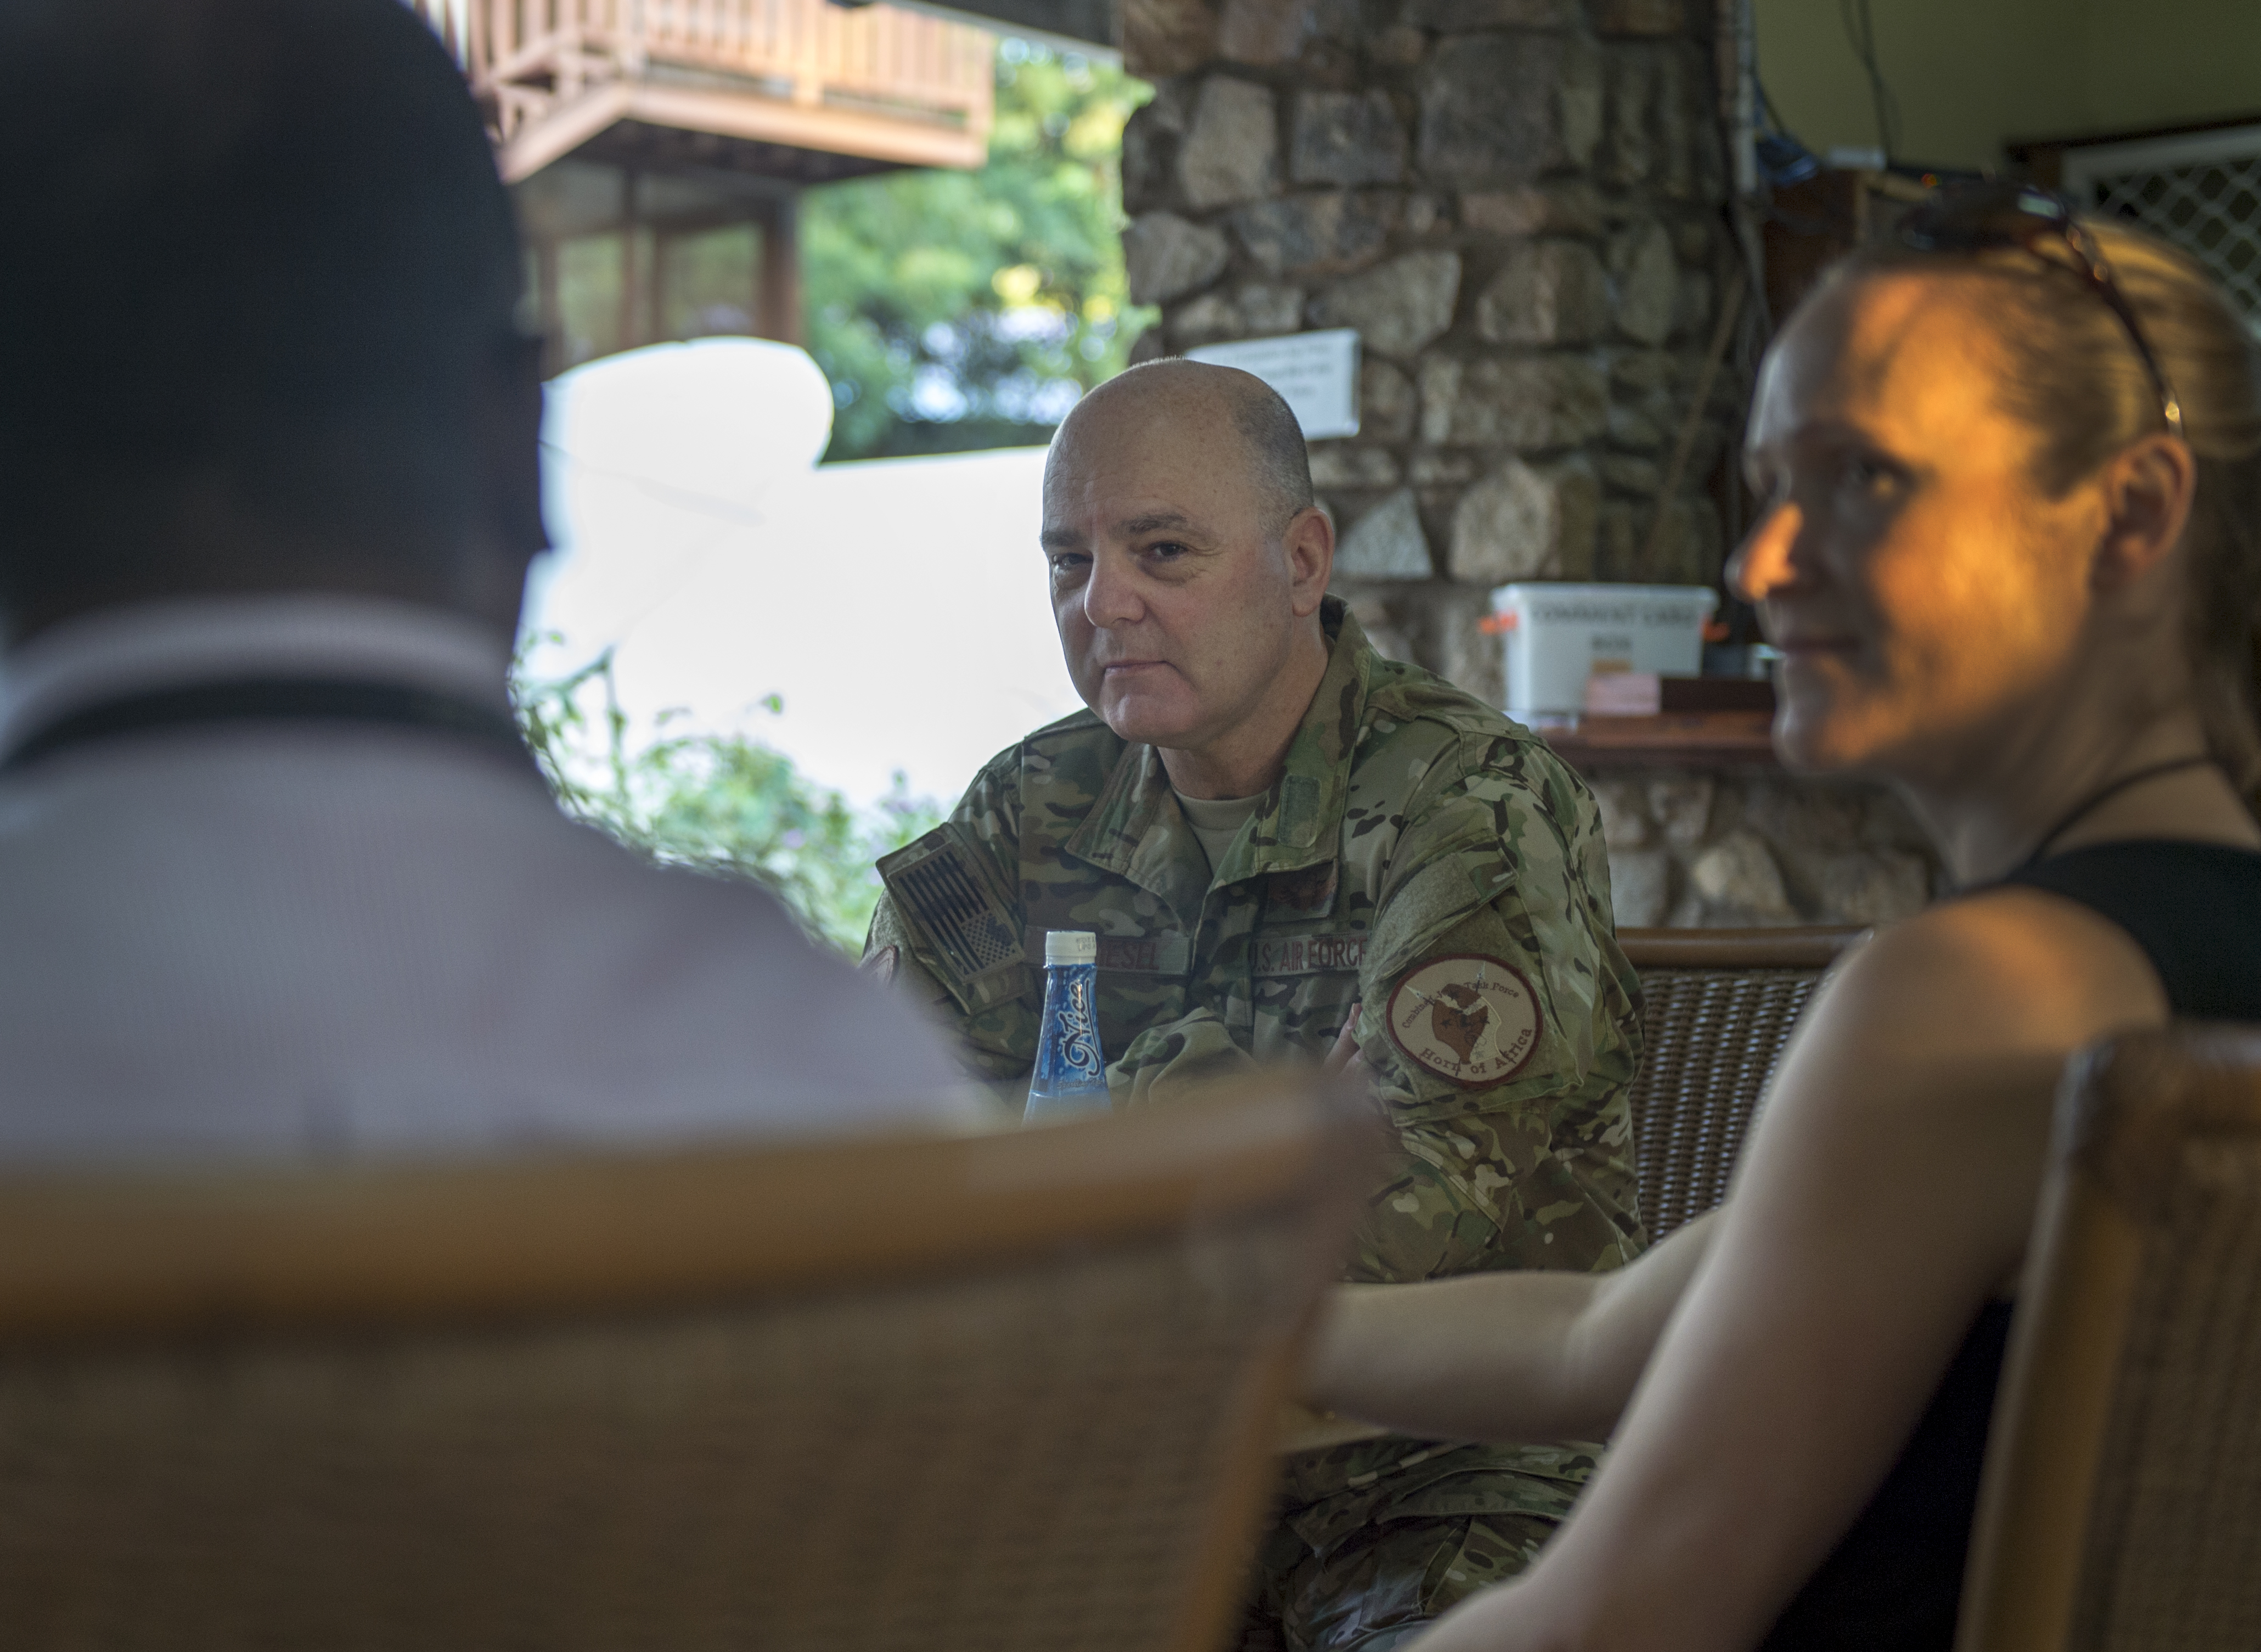 U.S. Air Force Brig. Gen. James R. Kriesel, deputy commanding general of Combined Joint Task Force-Horn of Africa (CJTF-HOA), meets with doctors from the Center for Disease Control (CDC) in Juba, South Sudan, Aug. 14, 2019. Kriesl and the CDC team discussed the progress CJTF-HOA is helping South Sudan make through CJTF-HOA's medical civil action projects with the citizens of South Sudan. (U.S. Air Force Photo by Senior Airman Codie Trimble)